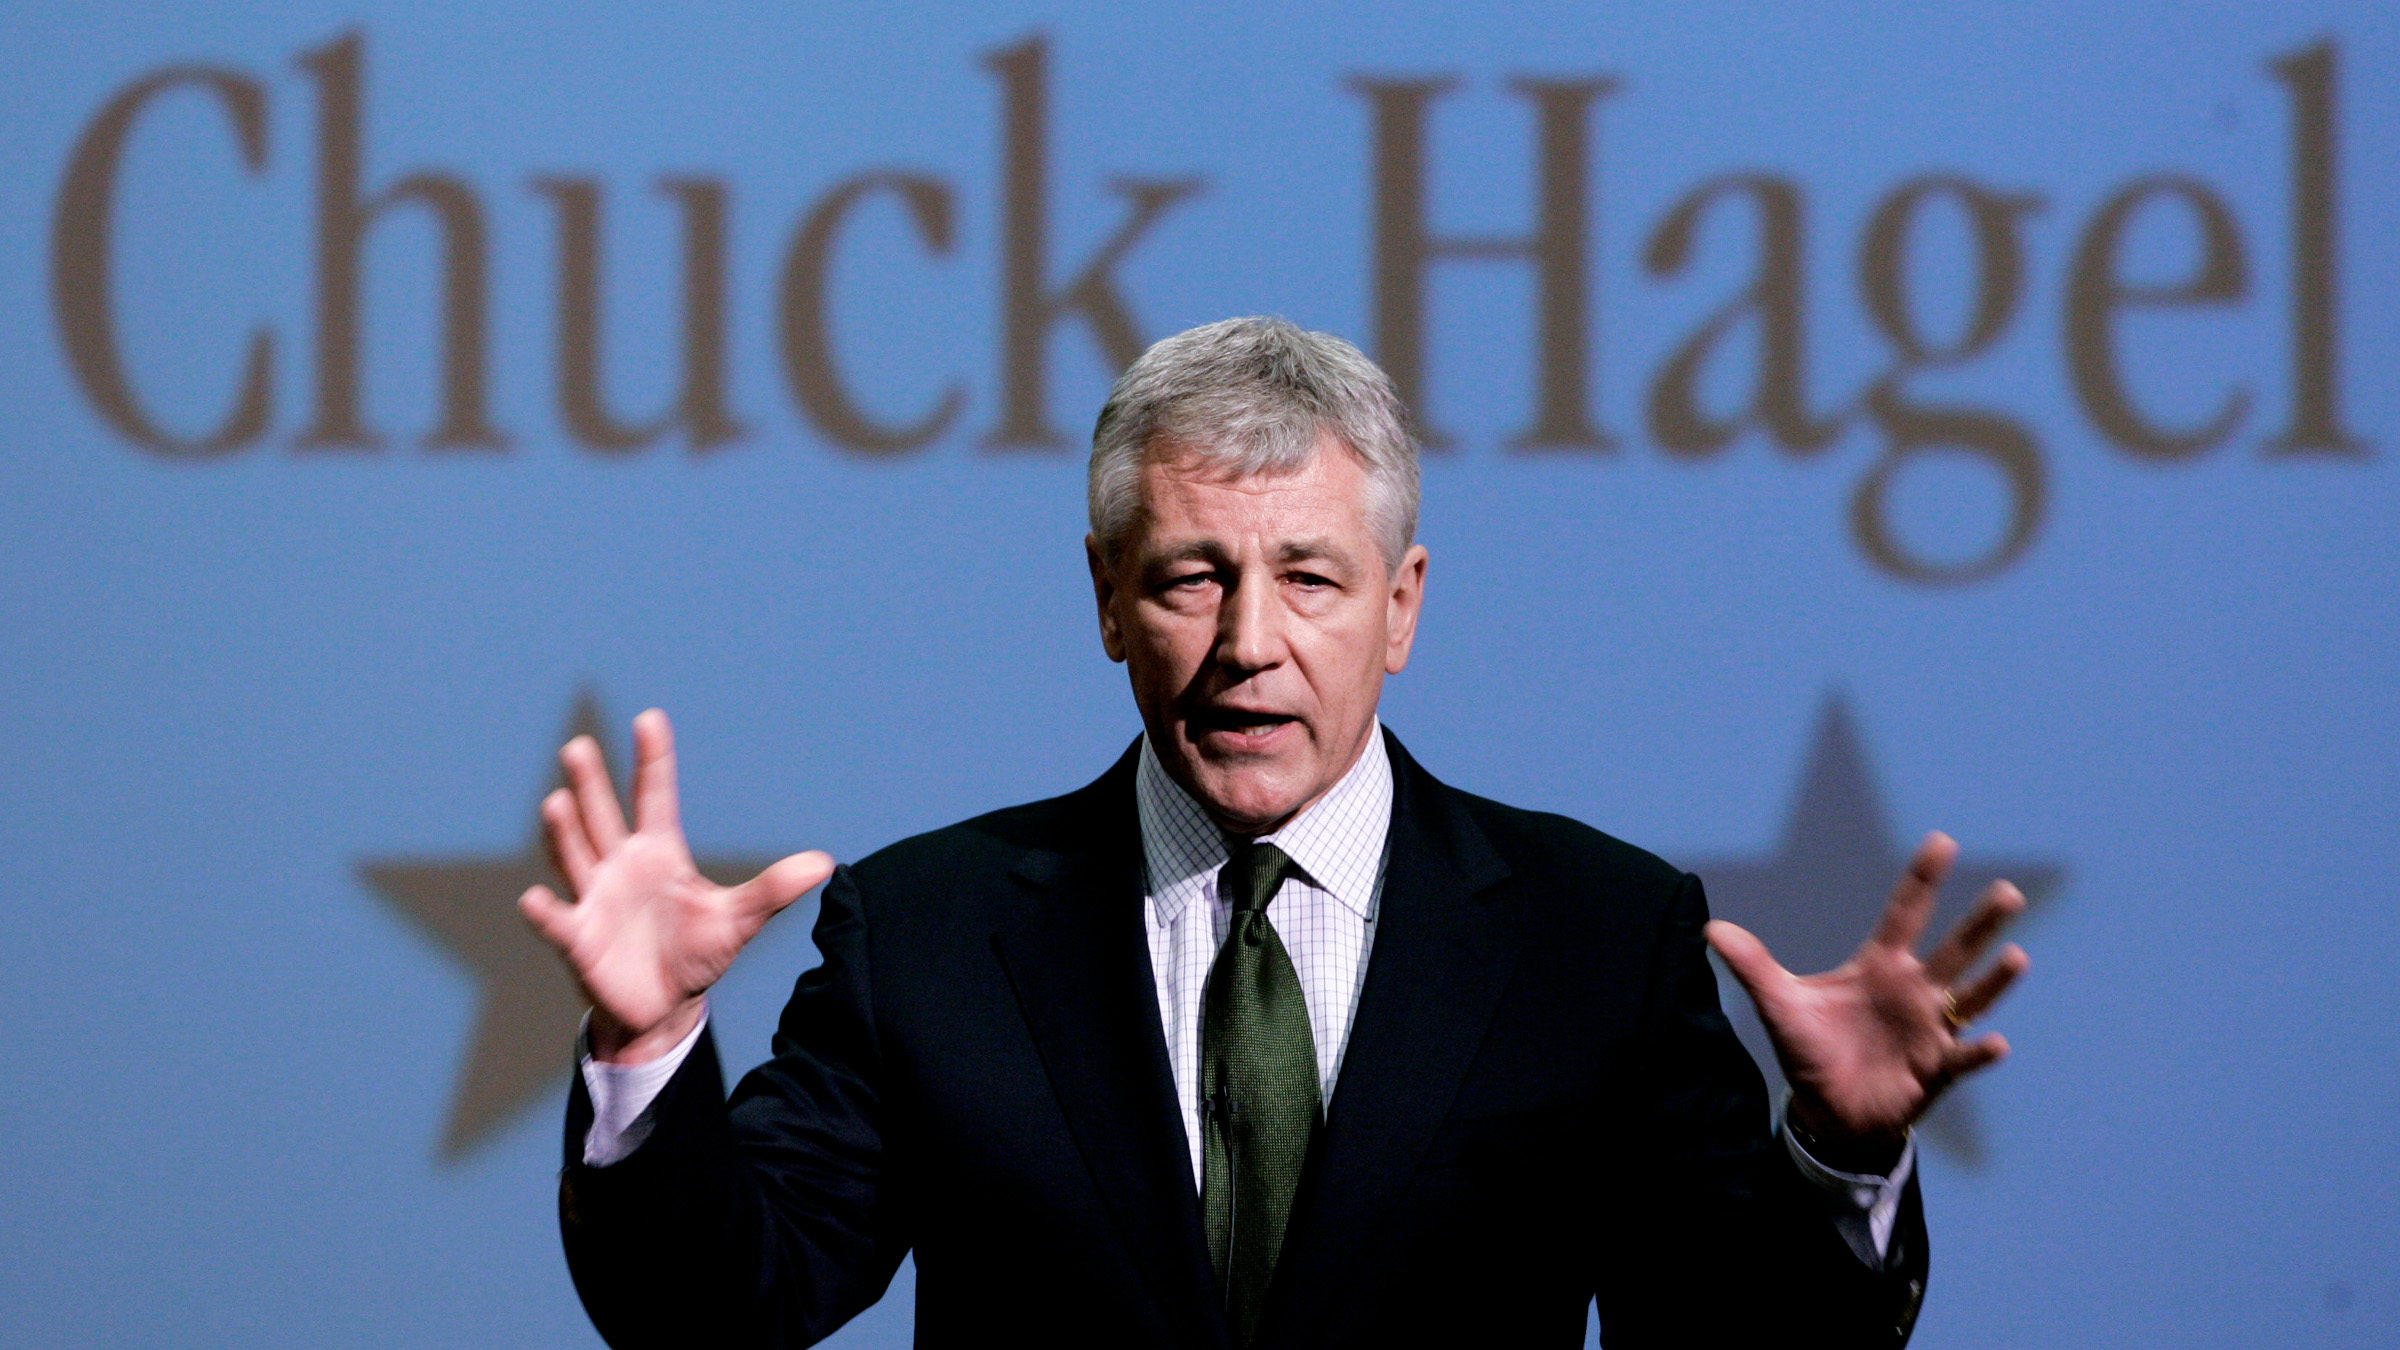 Defense Secretary Nominee Chuck Hagel could be just the man to grapple with bloated Pentagon budgets.